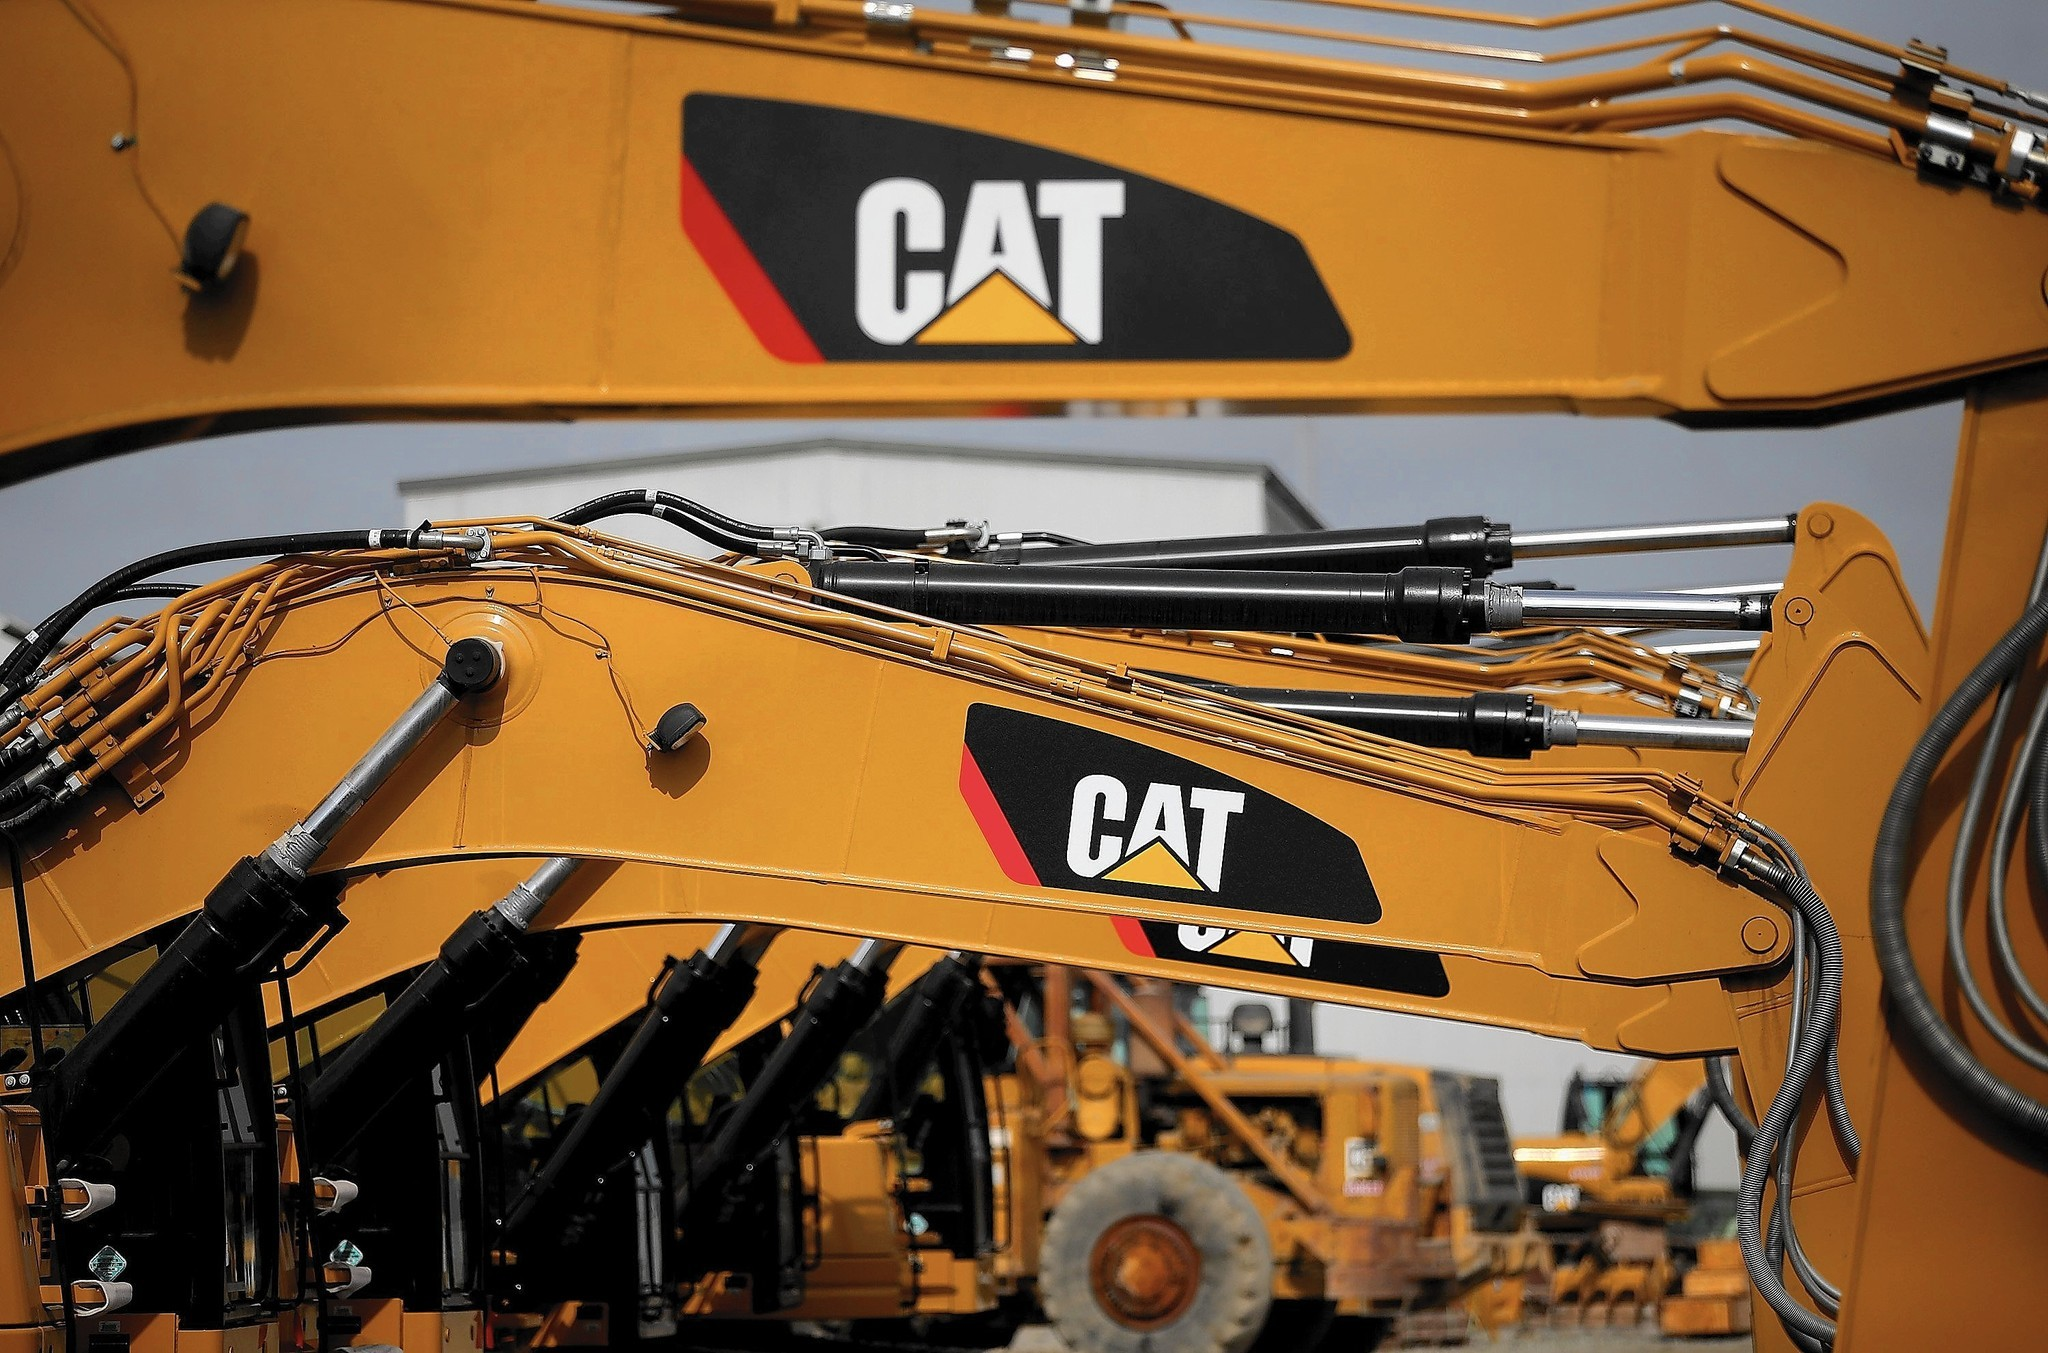 Caterpillar ordered to pay $73.6M to tiny British firm for stealing design